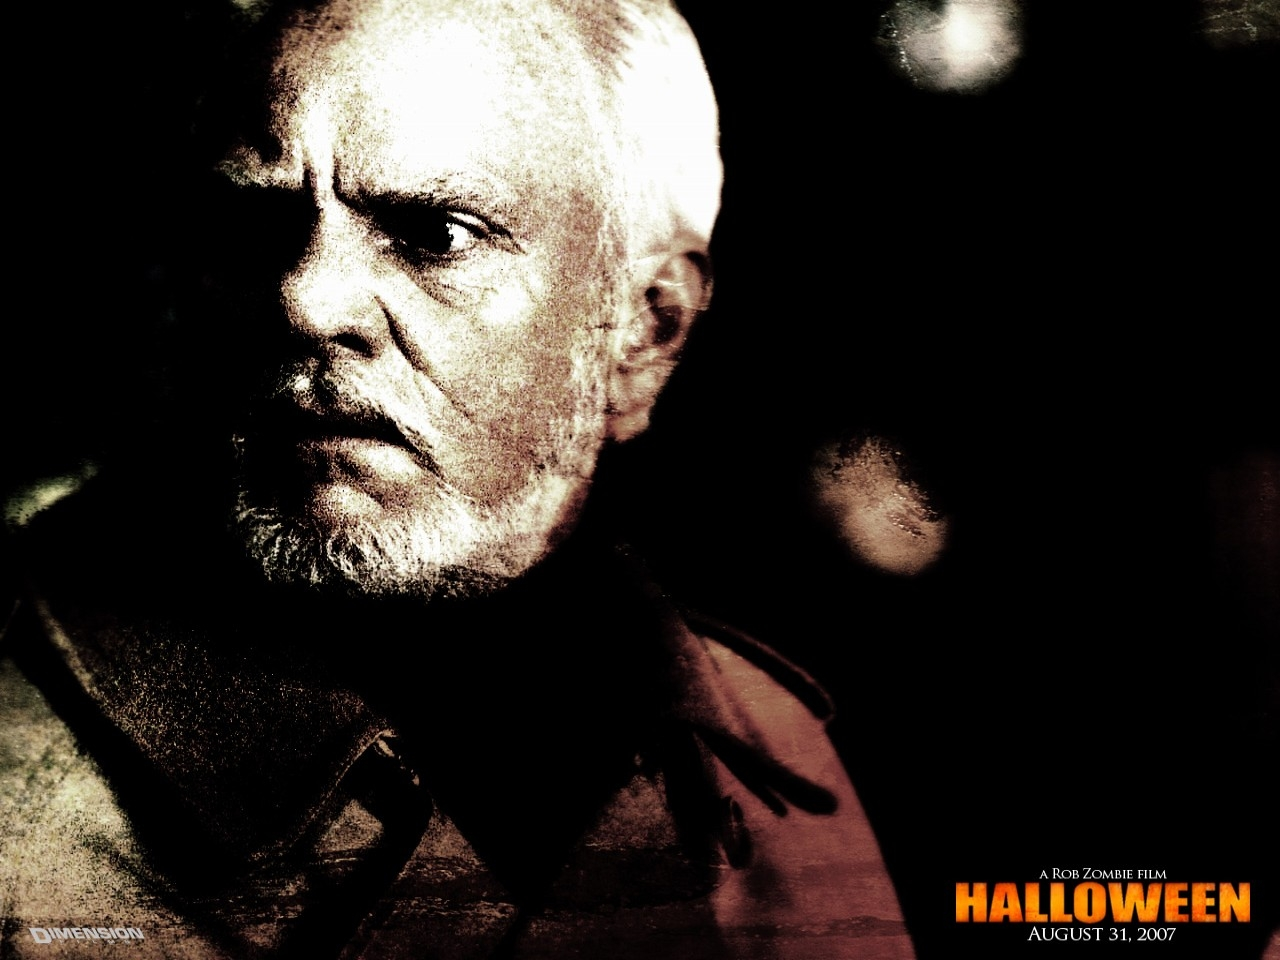 Wallpaper di Malcolm McDowell nel film Halloween: The beginning